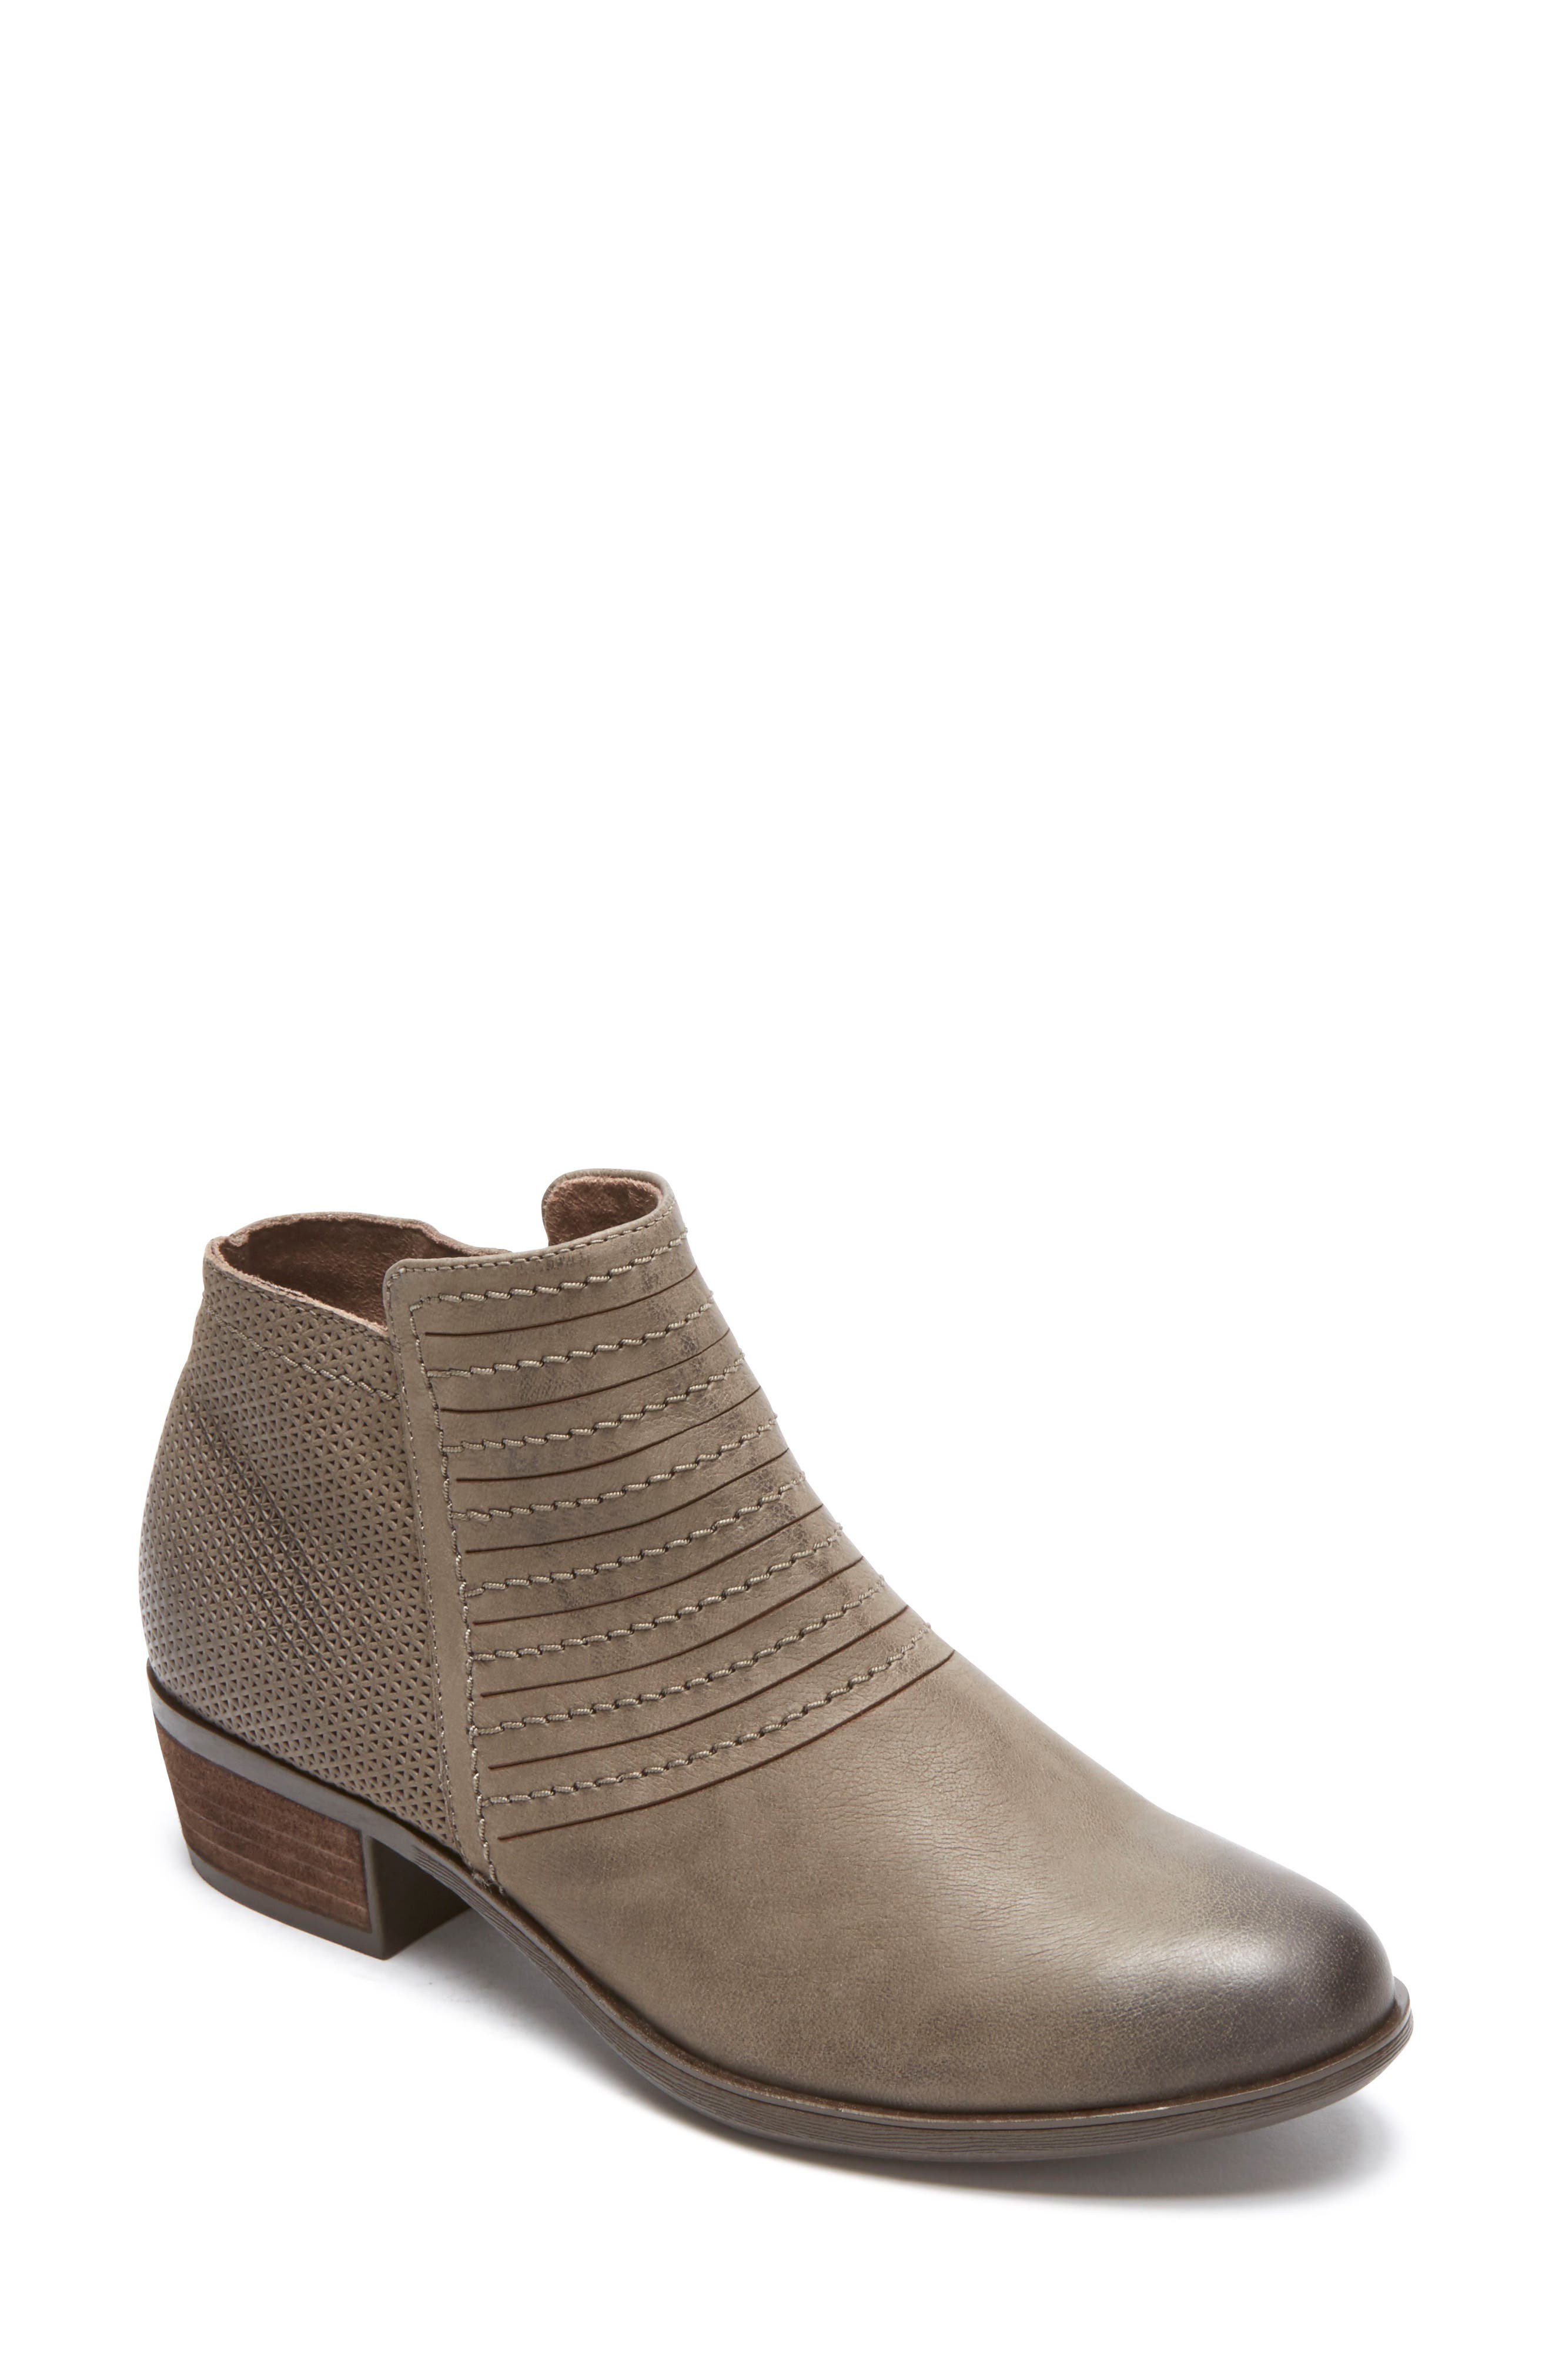 Vanna Strappy Bootie,                             Main thumbnail 1, color,                             Olive Grey Nubuck